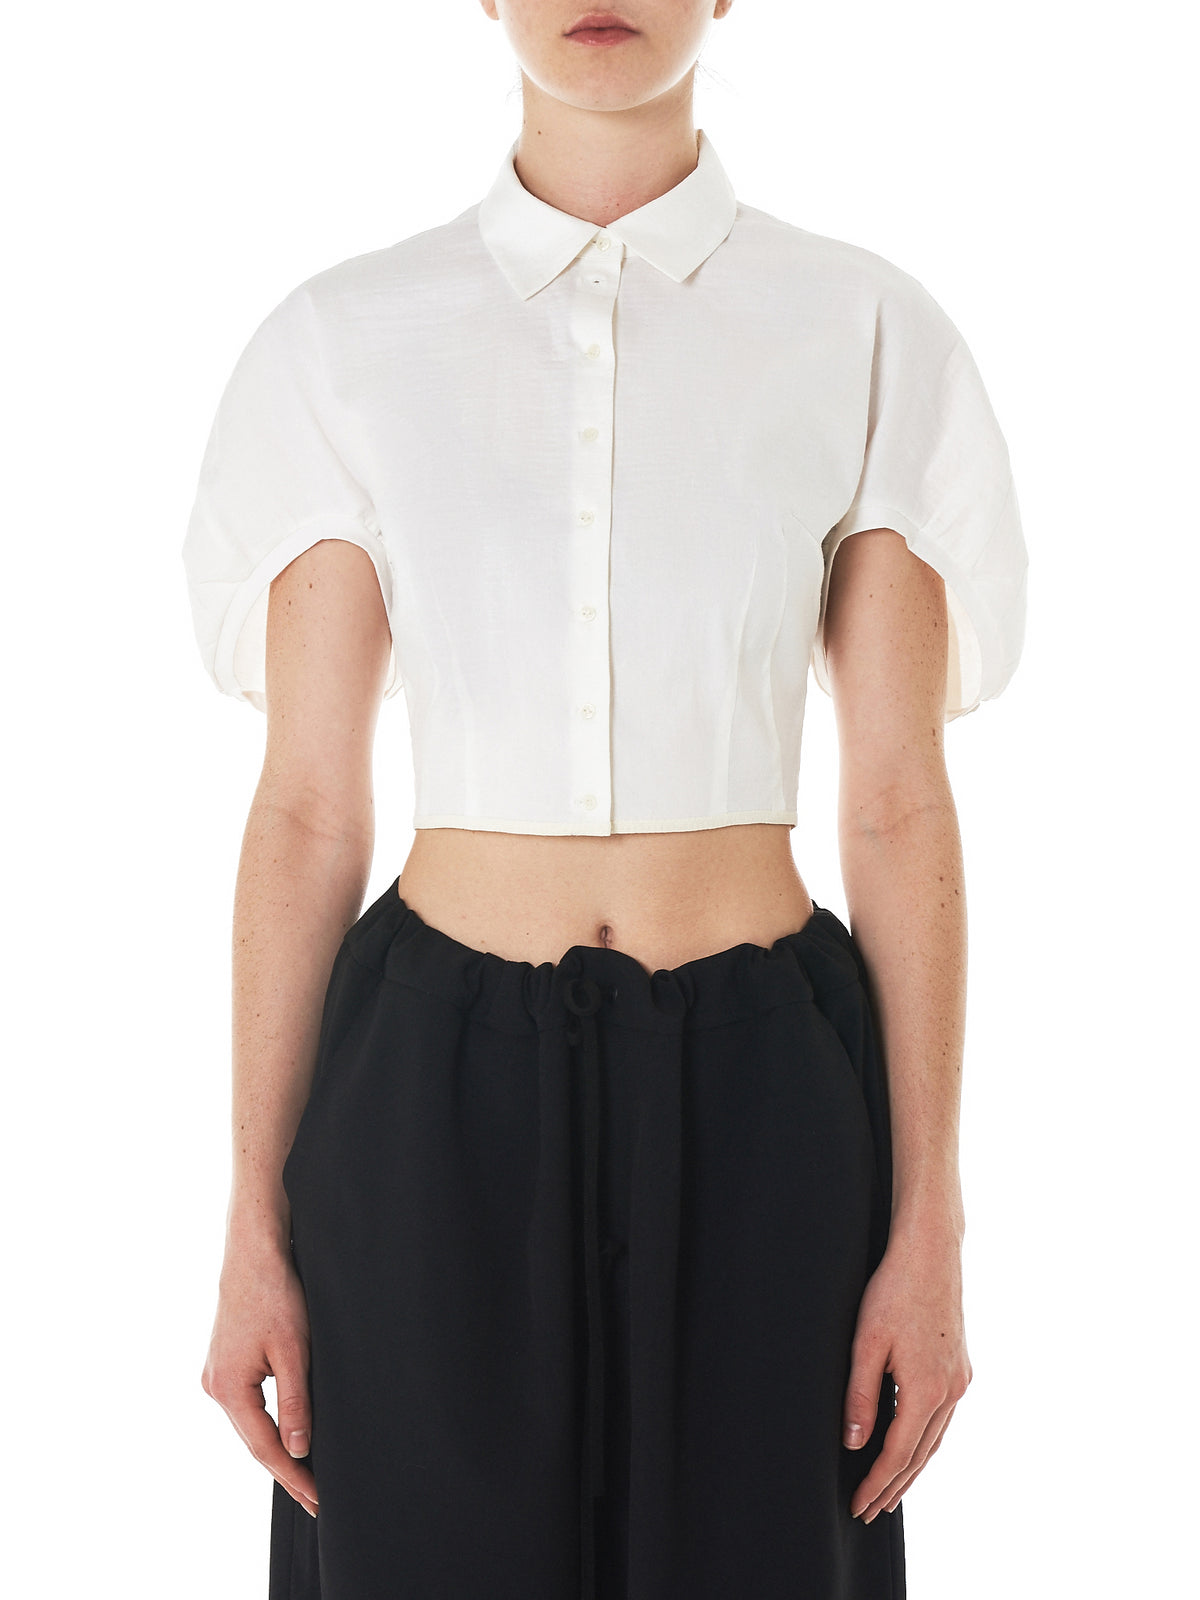 'Bria' Cropped Blouse (BRIA-OFF-WHITE)